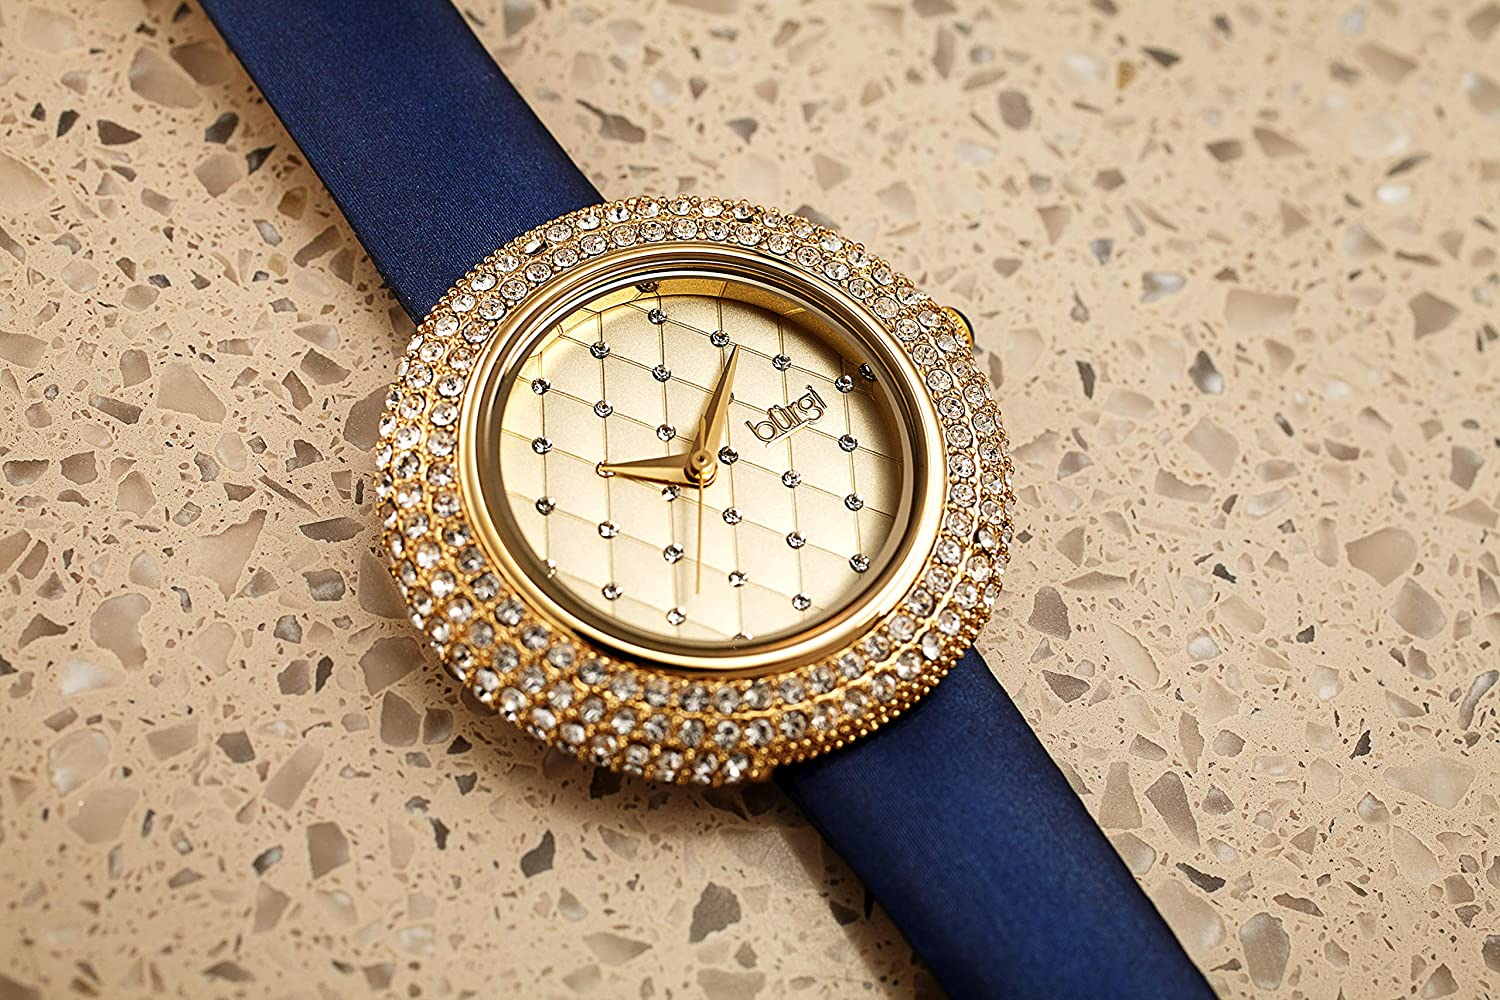 Burgi Swarovski Crystals Encrusted Quilted Dial - Swarovski Crystals Bezel with Satin Leather Strap Women's Watch - Mothers Day Gift - BUR207 Midnight Blue & Gold